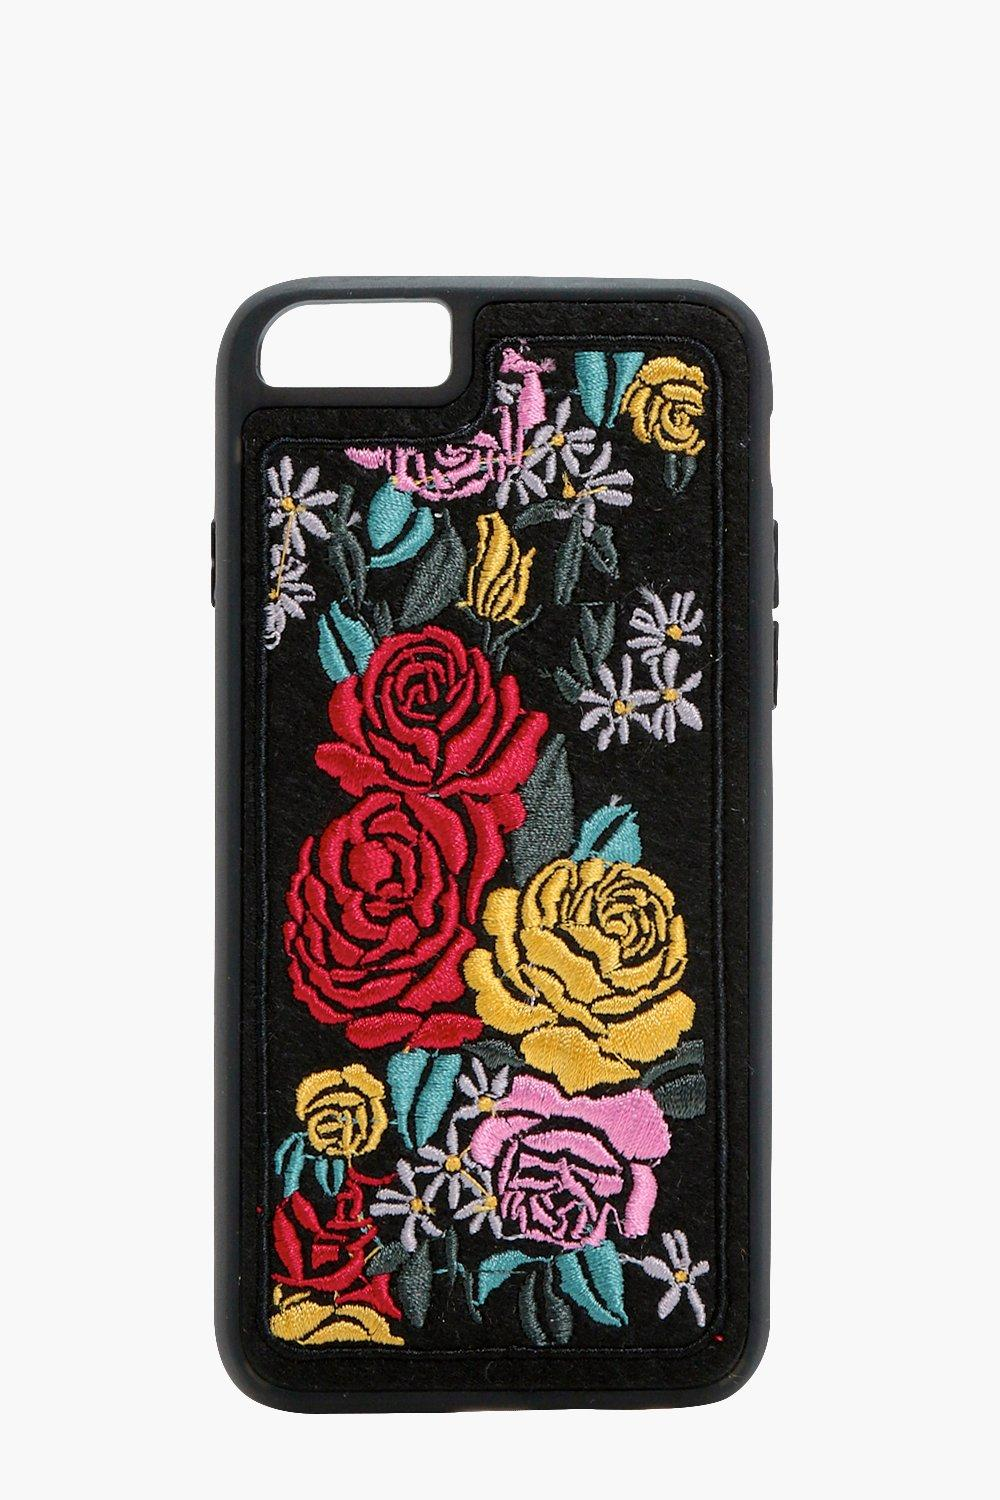 iPhone 6 Case - multi - Floral iPhone 6 Case - mul